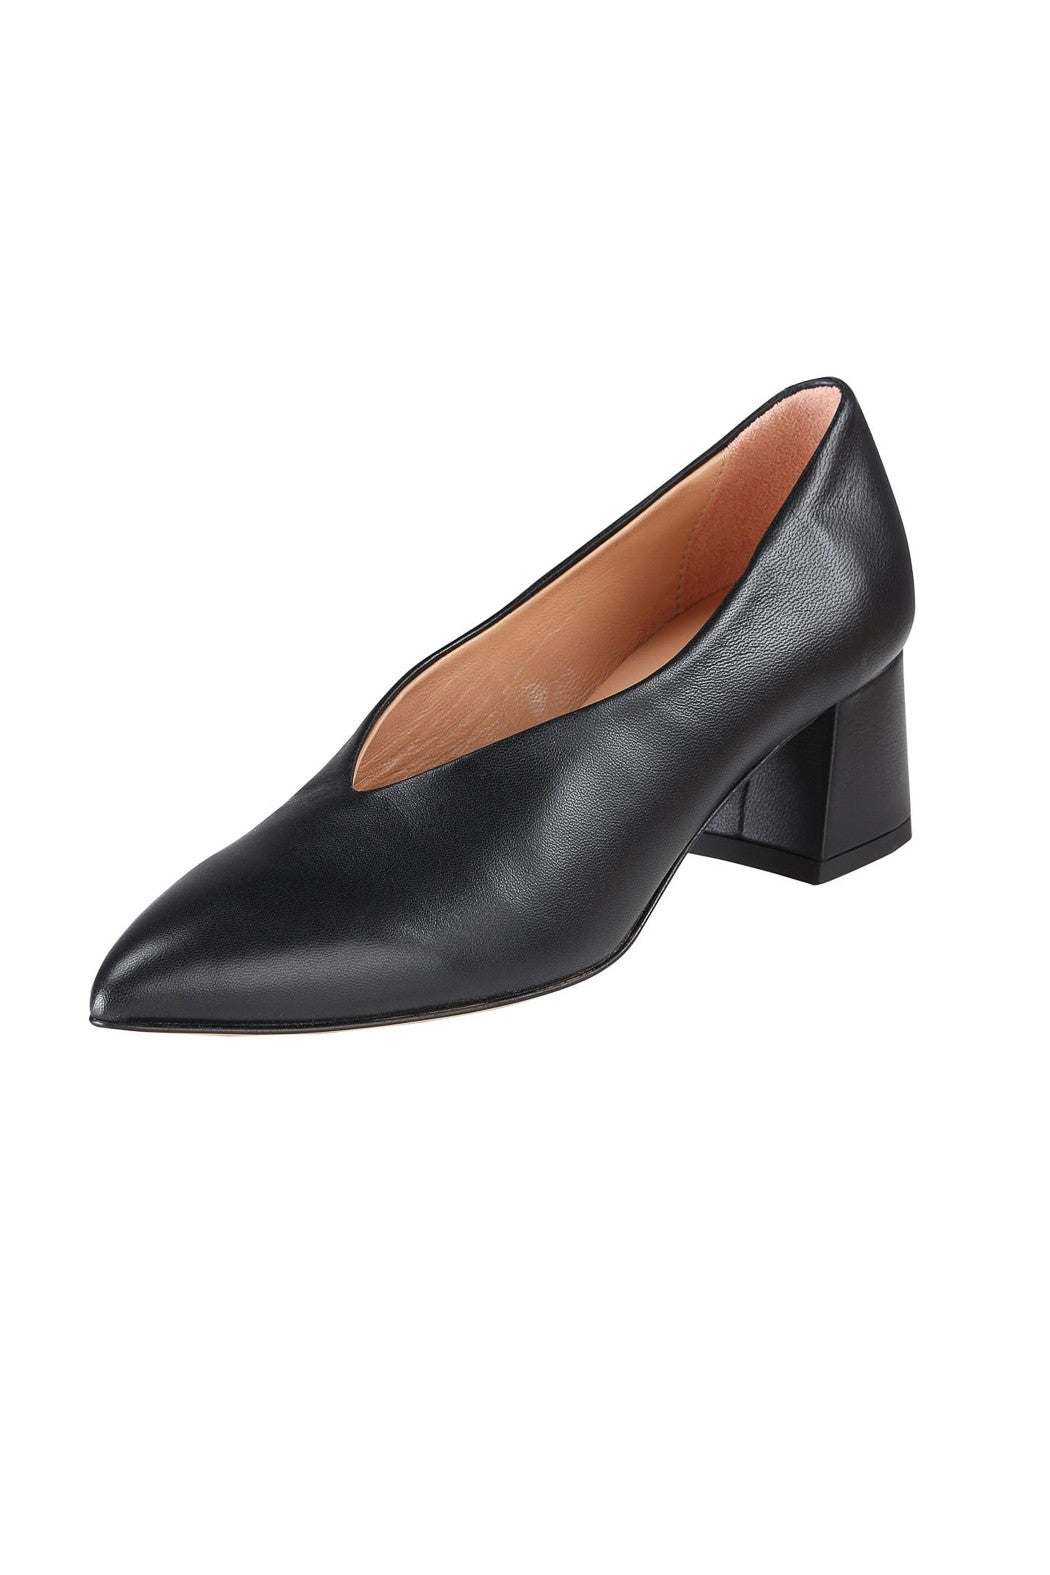 VICTORIA2 Manu Mari Pump in Black